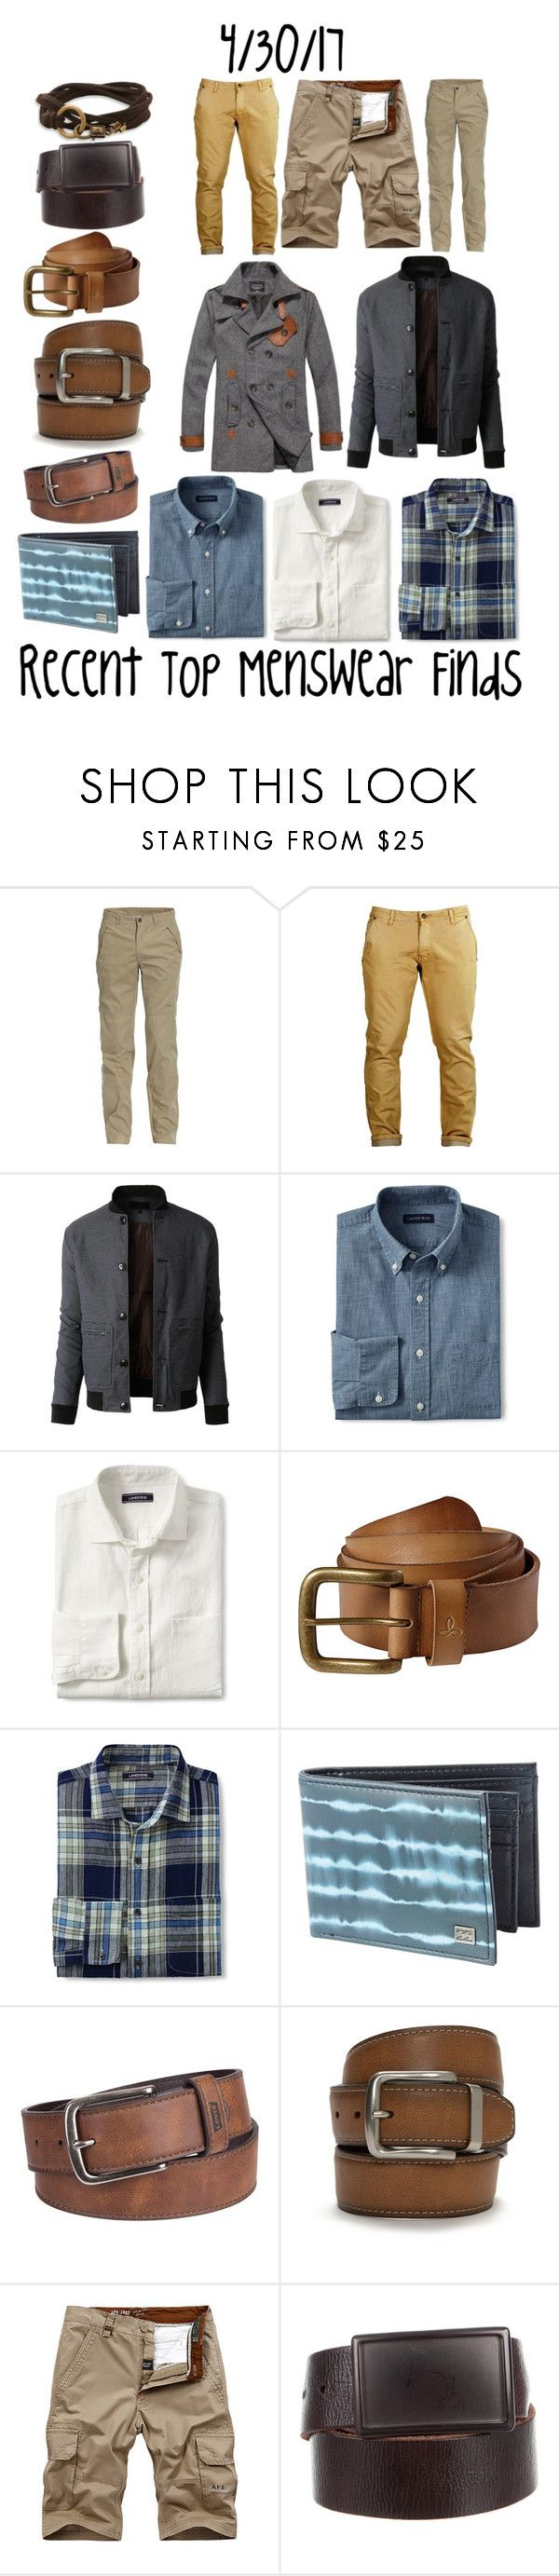 """""""Recent Top Menswear Finds"""" by maggie-johnston ❤ liked on Polyvore featuring Jeep, LE3NO, Paltò, Lands' End, prAna, Billabong, Levi's, Columbia, John Varvatos * U.S.A. and men's fashion"""